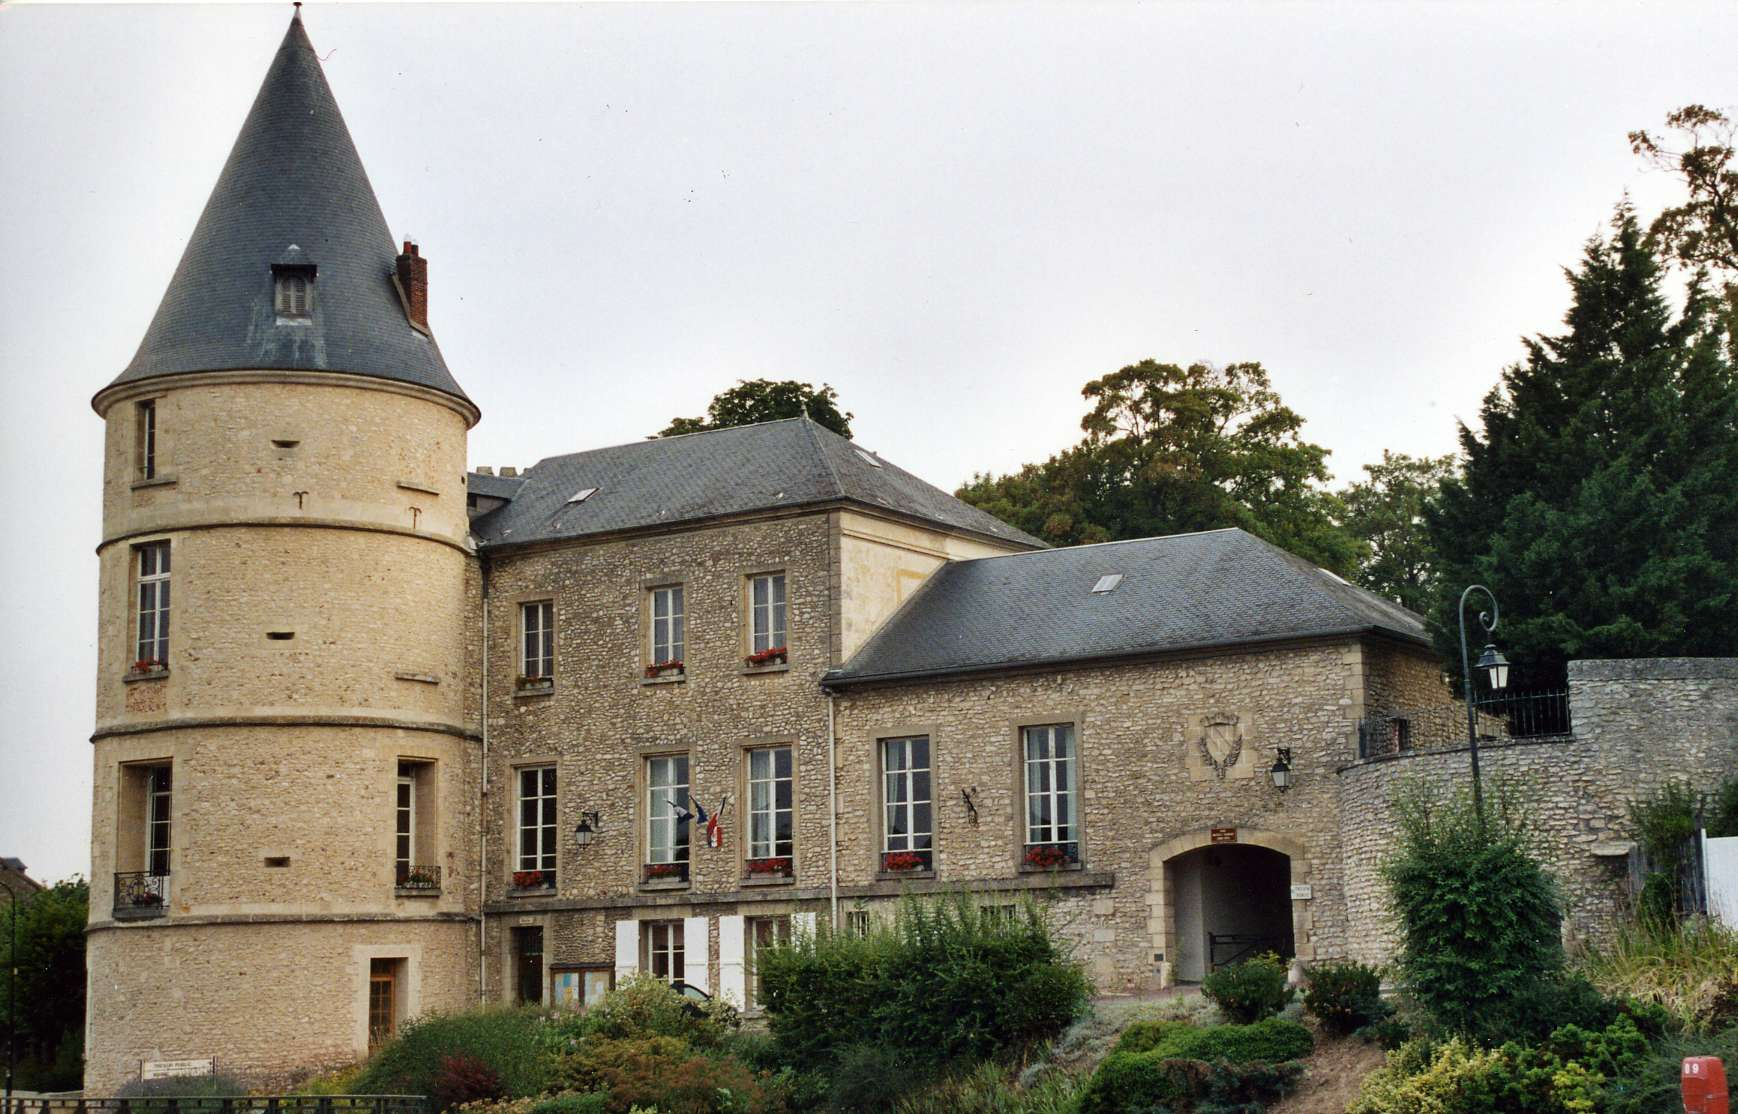 Trie ch teau wikiwand for Piscine trie chateau